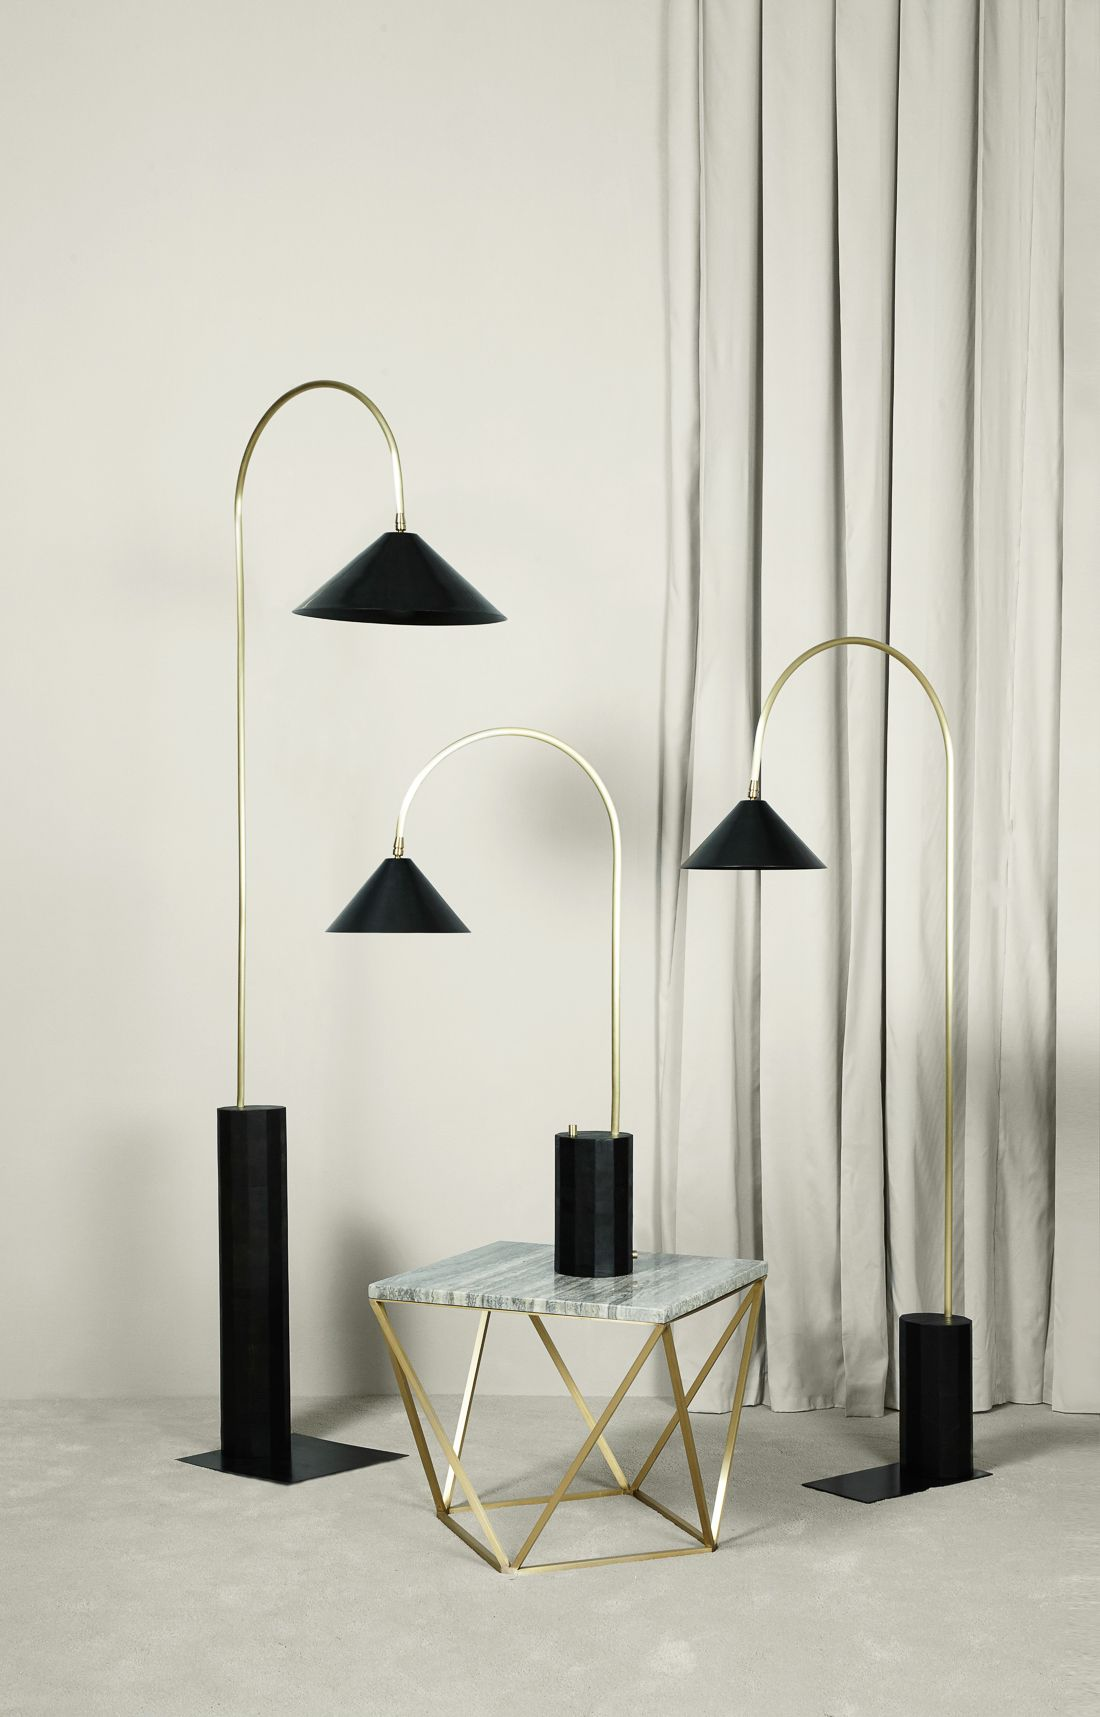 Coil + Drift Introduces New Objects for Spring | Floor lamp ...